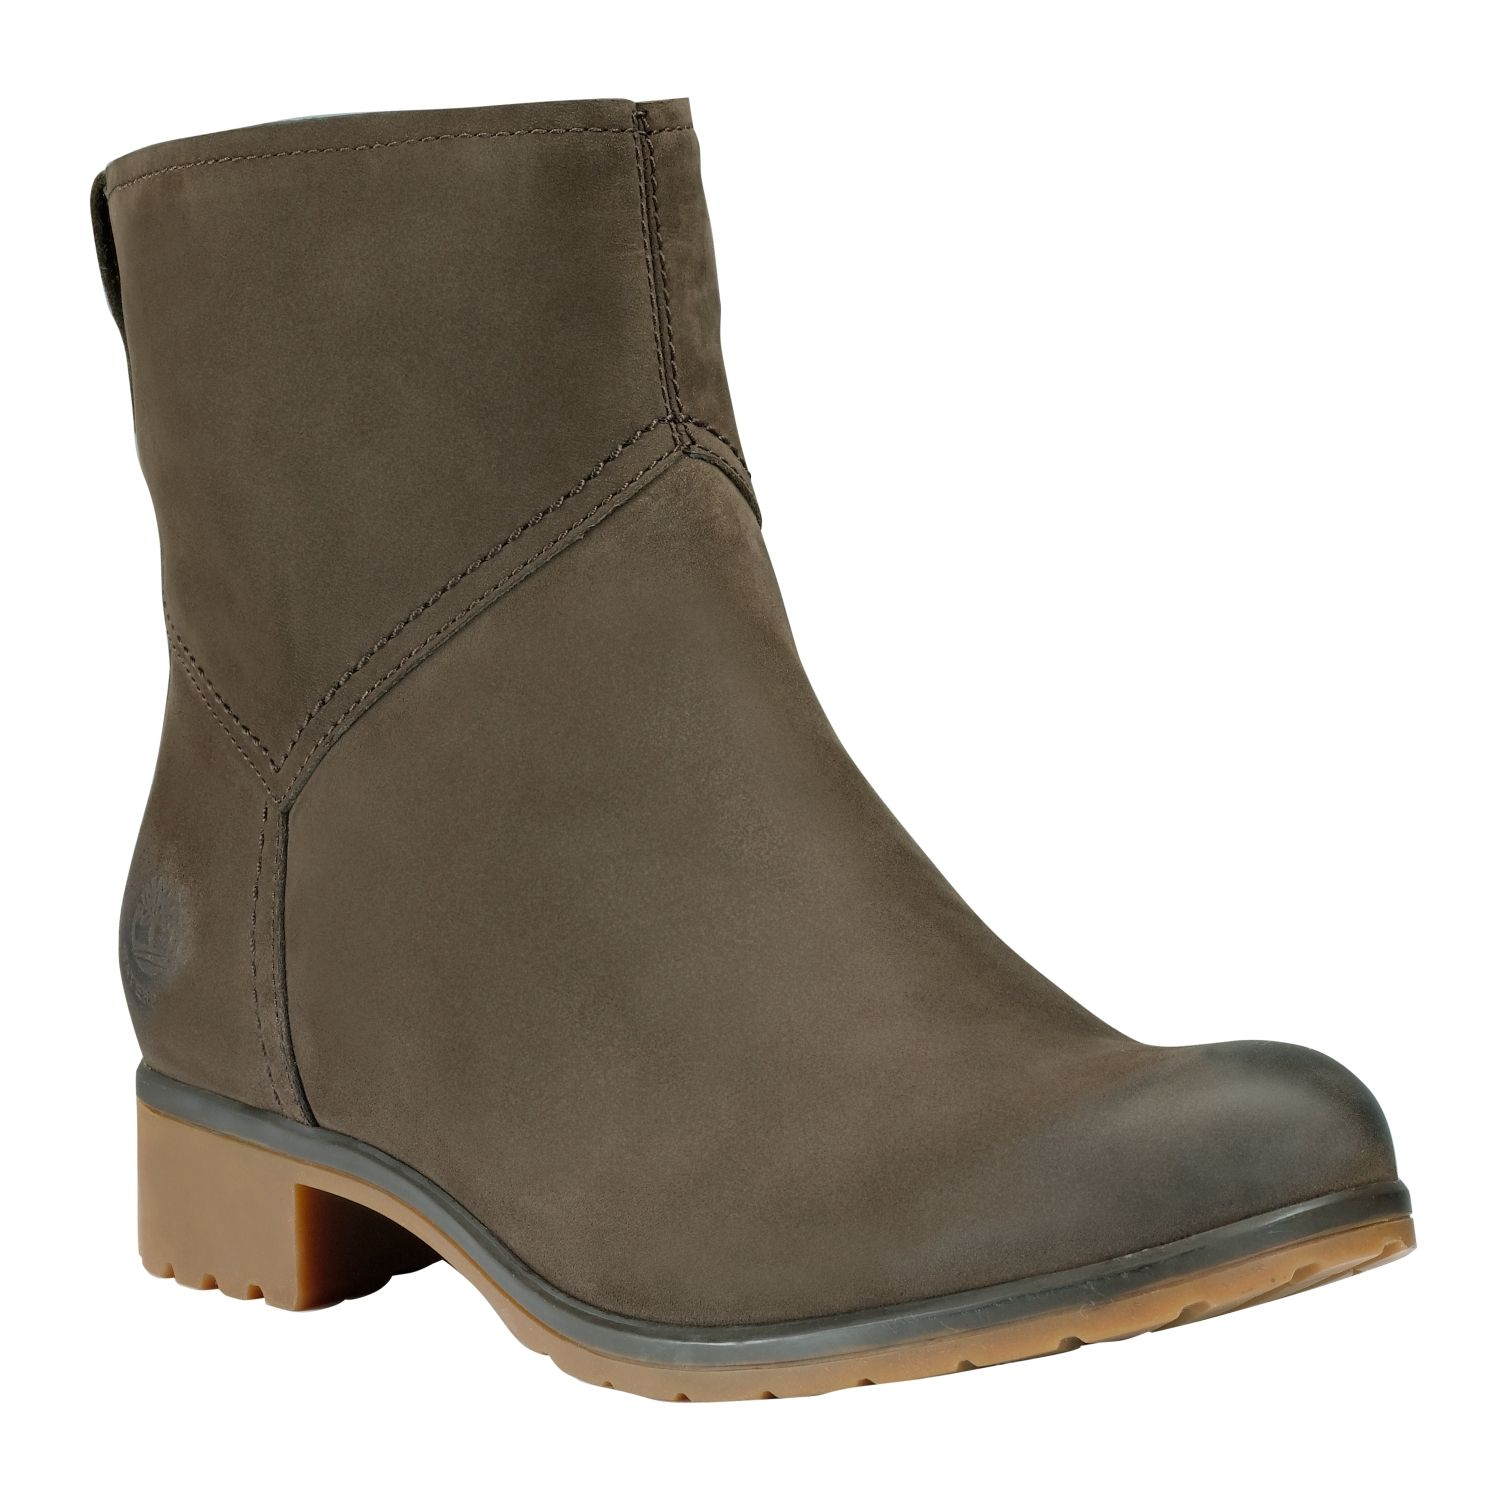 rubber ankle the pin stitching a vegan most comfortable boot dr iconic and for comforter air more featuring sole cushioned classic boots yellow martens